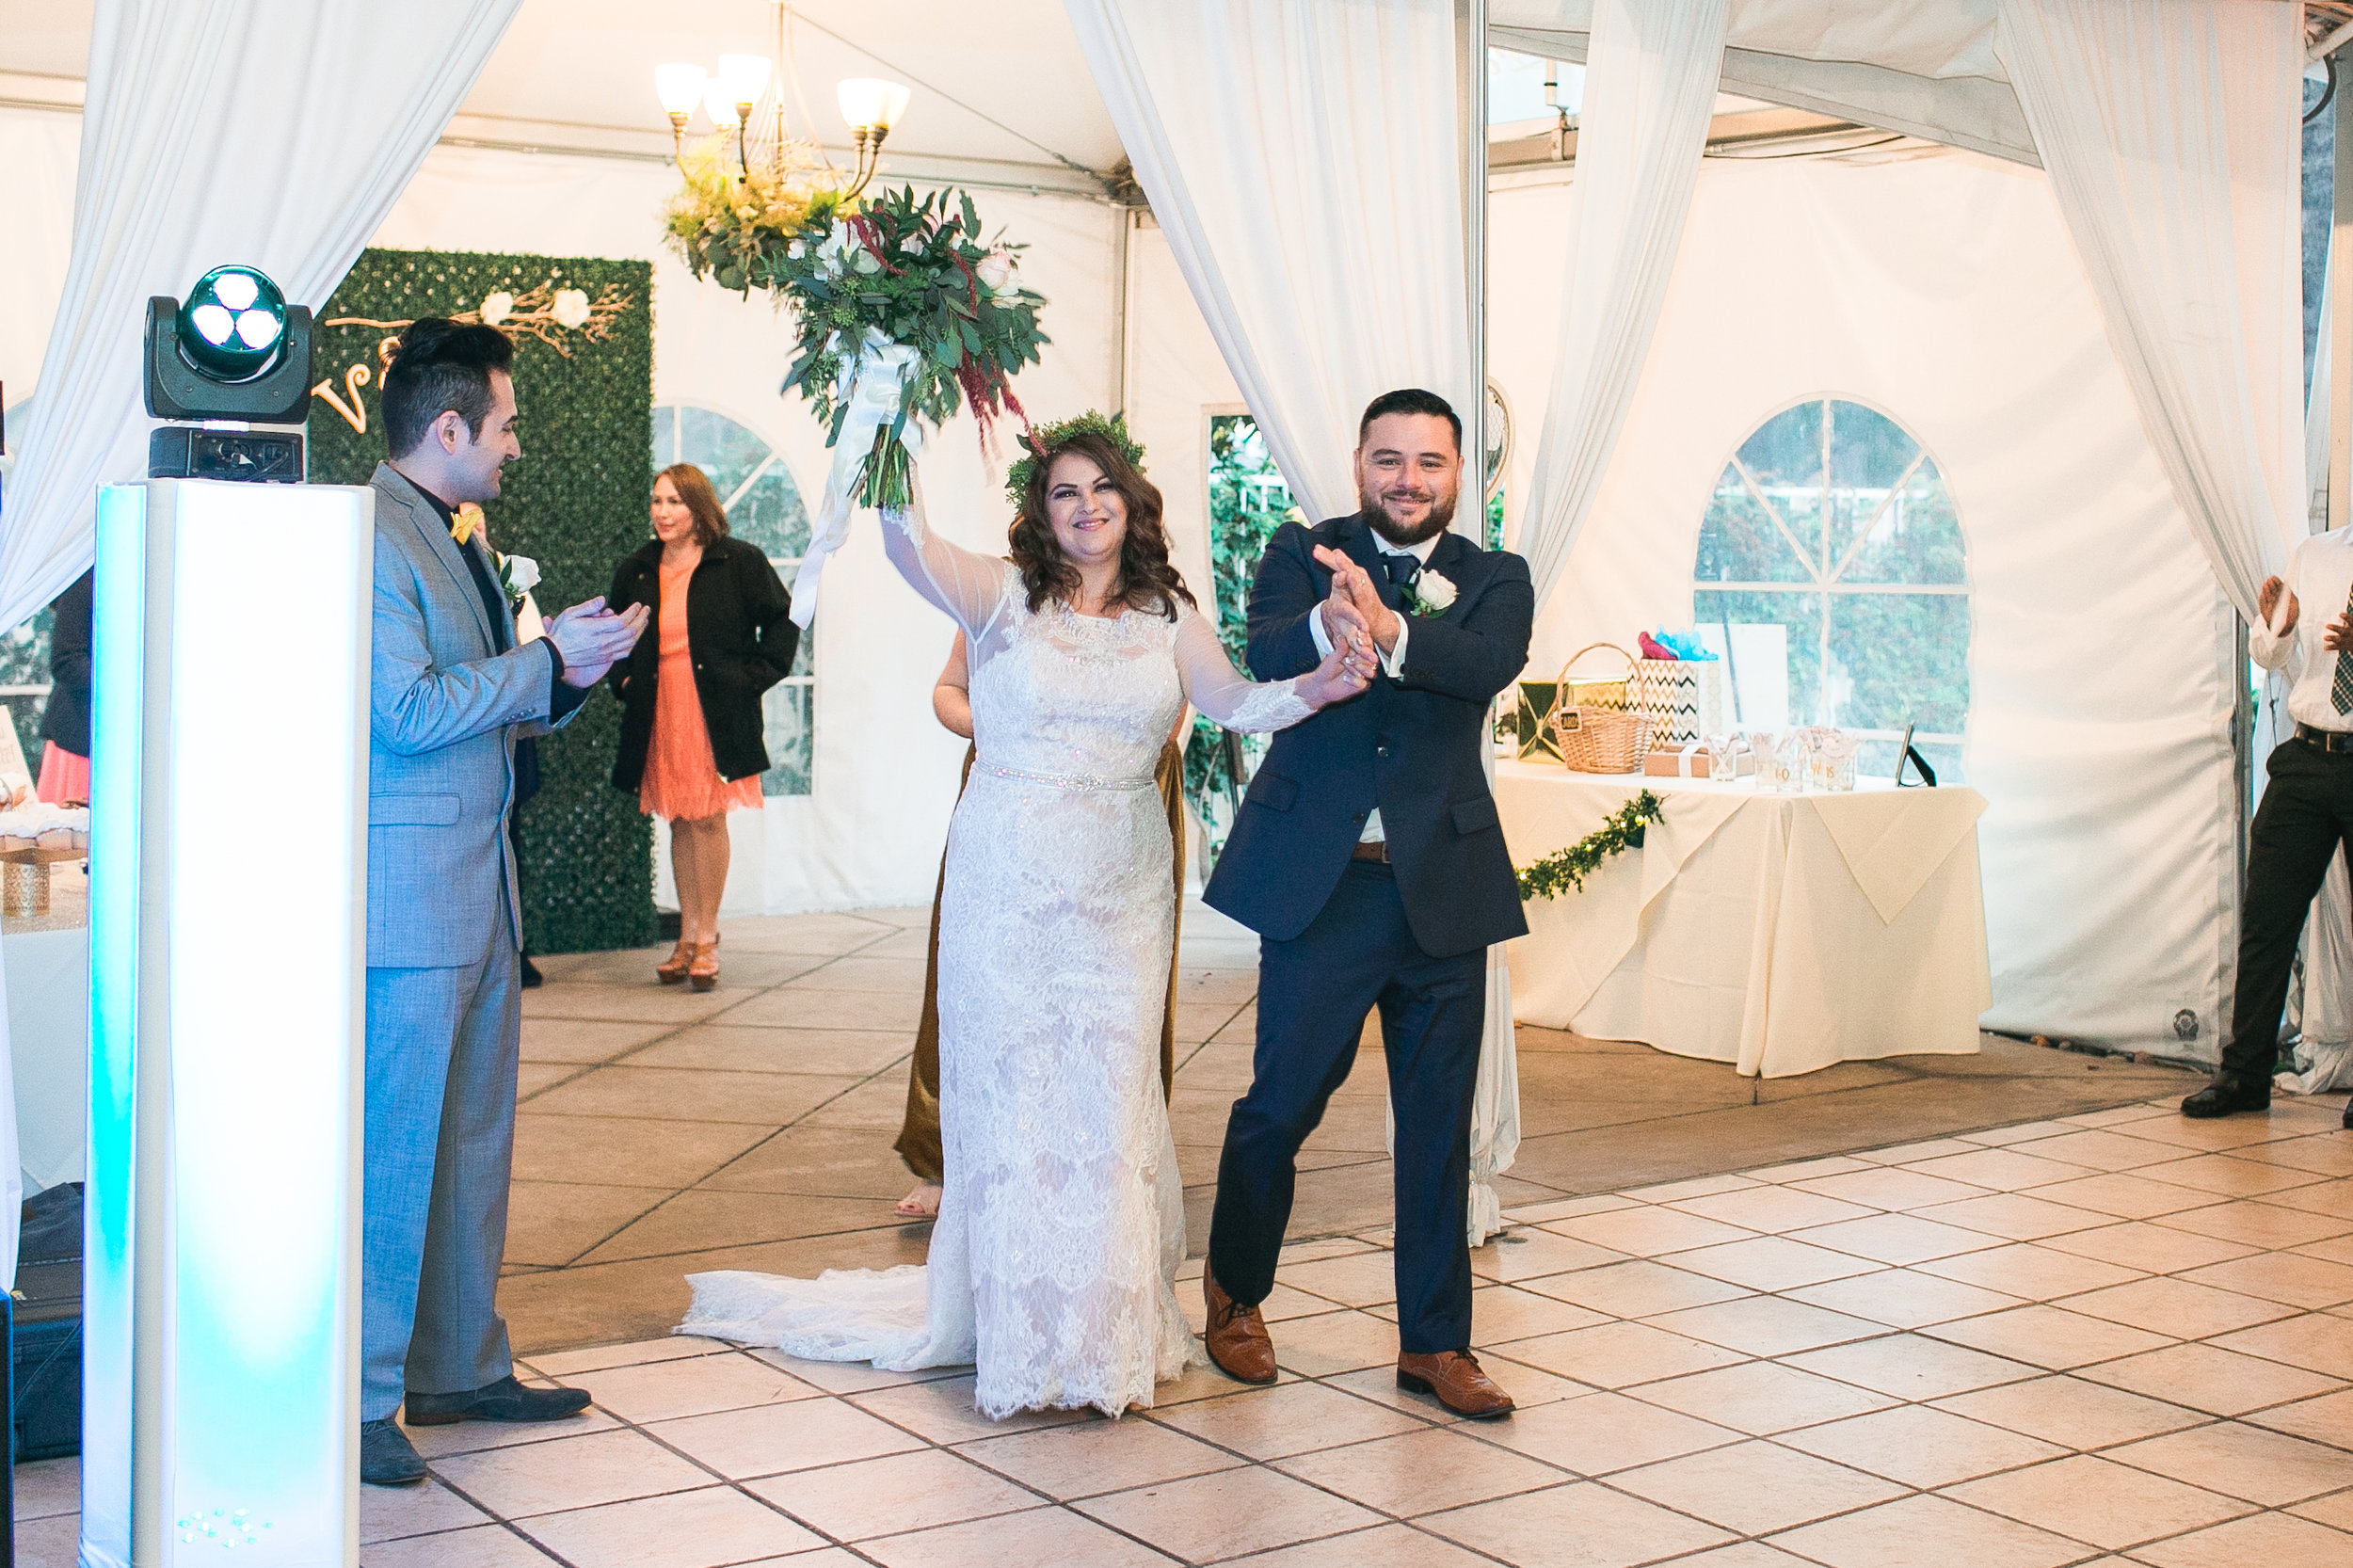 Welcoming the bride and groom to the reception!